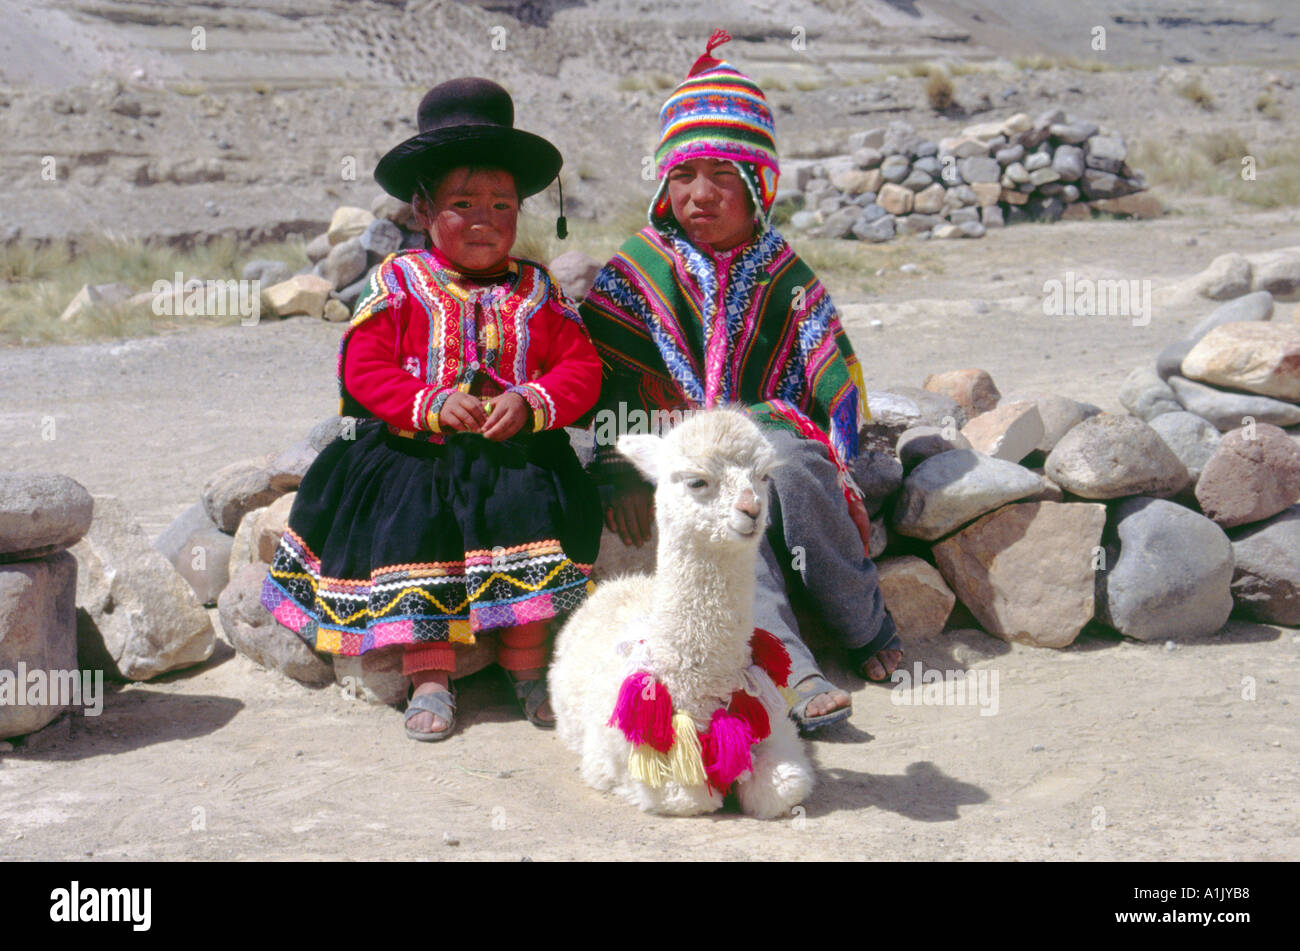 Boy And Girl In Traditional Embroided Clothing With A Baby Alpaca In